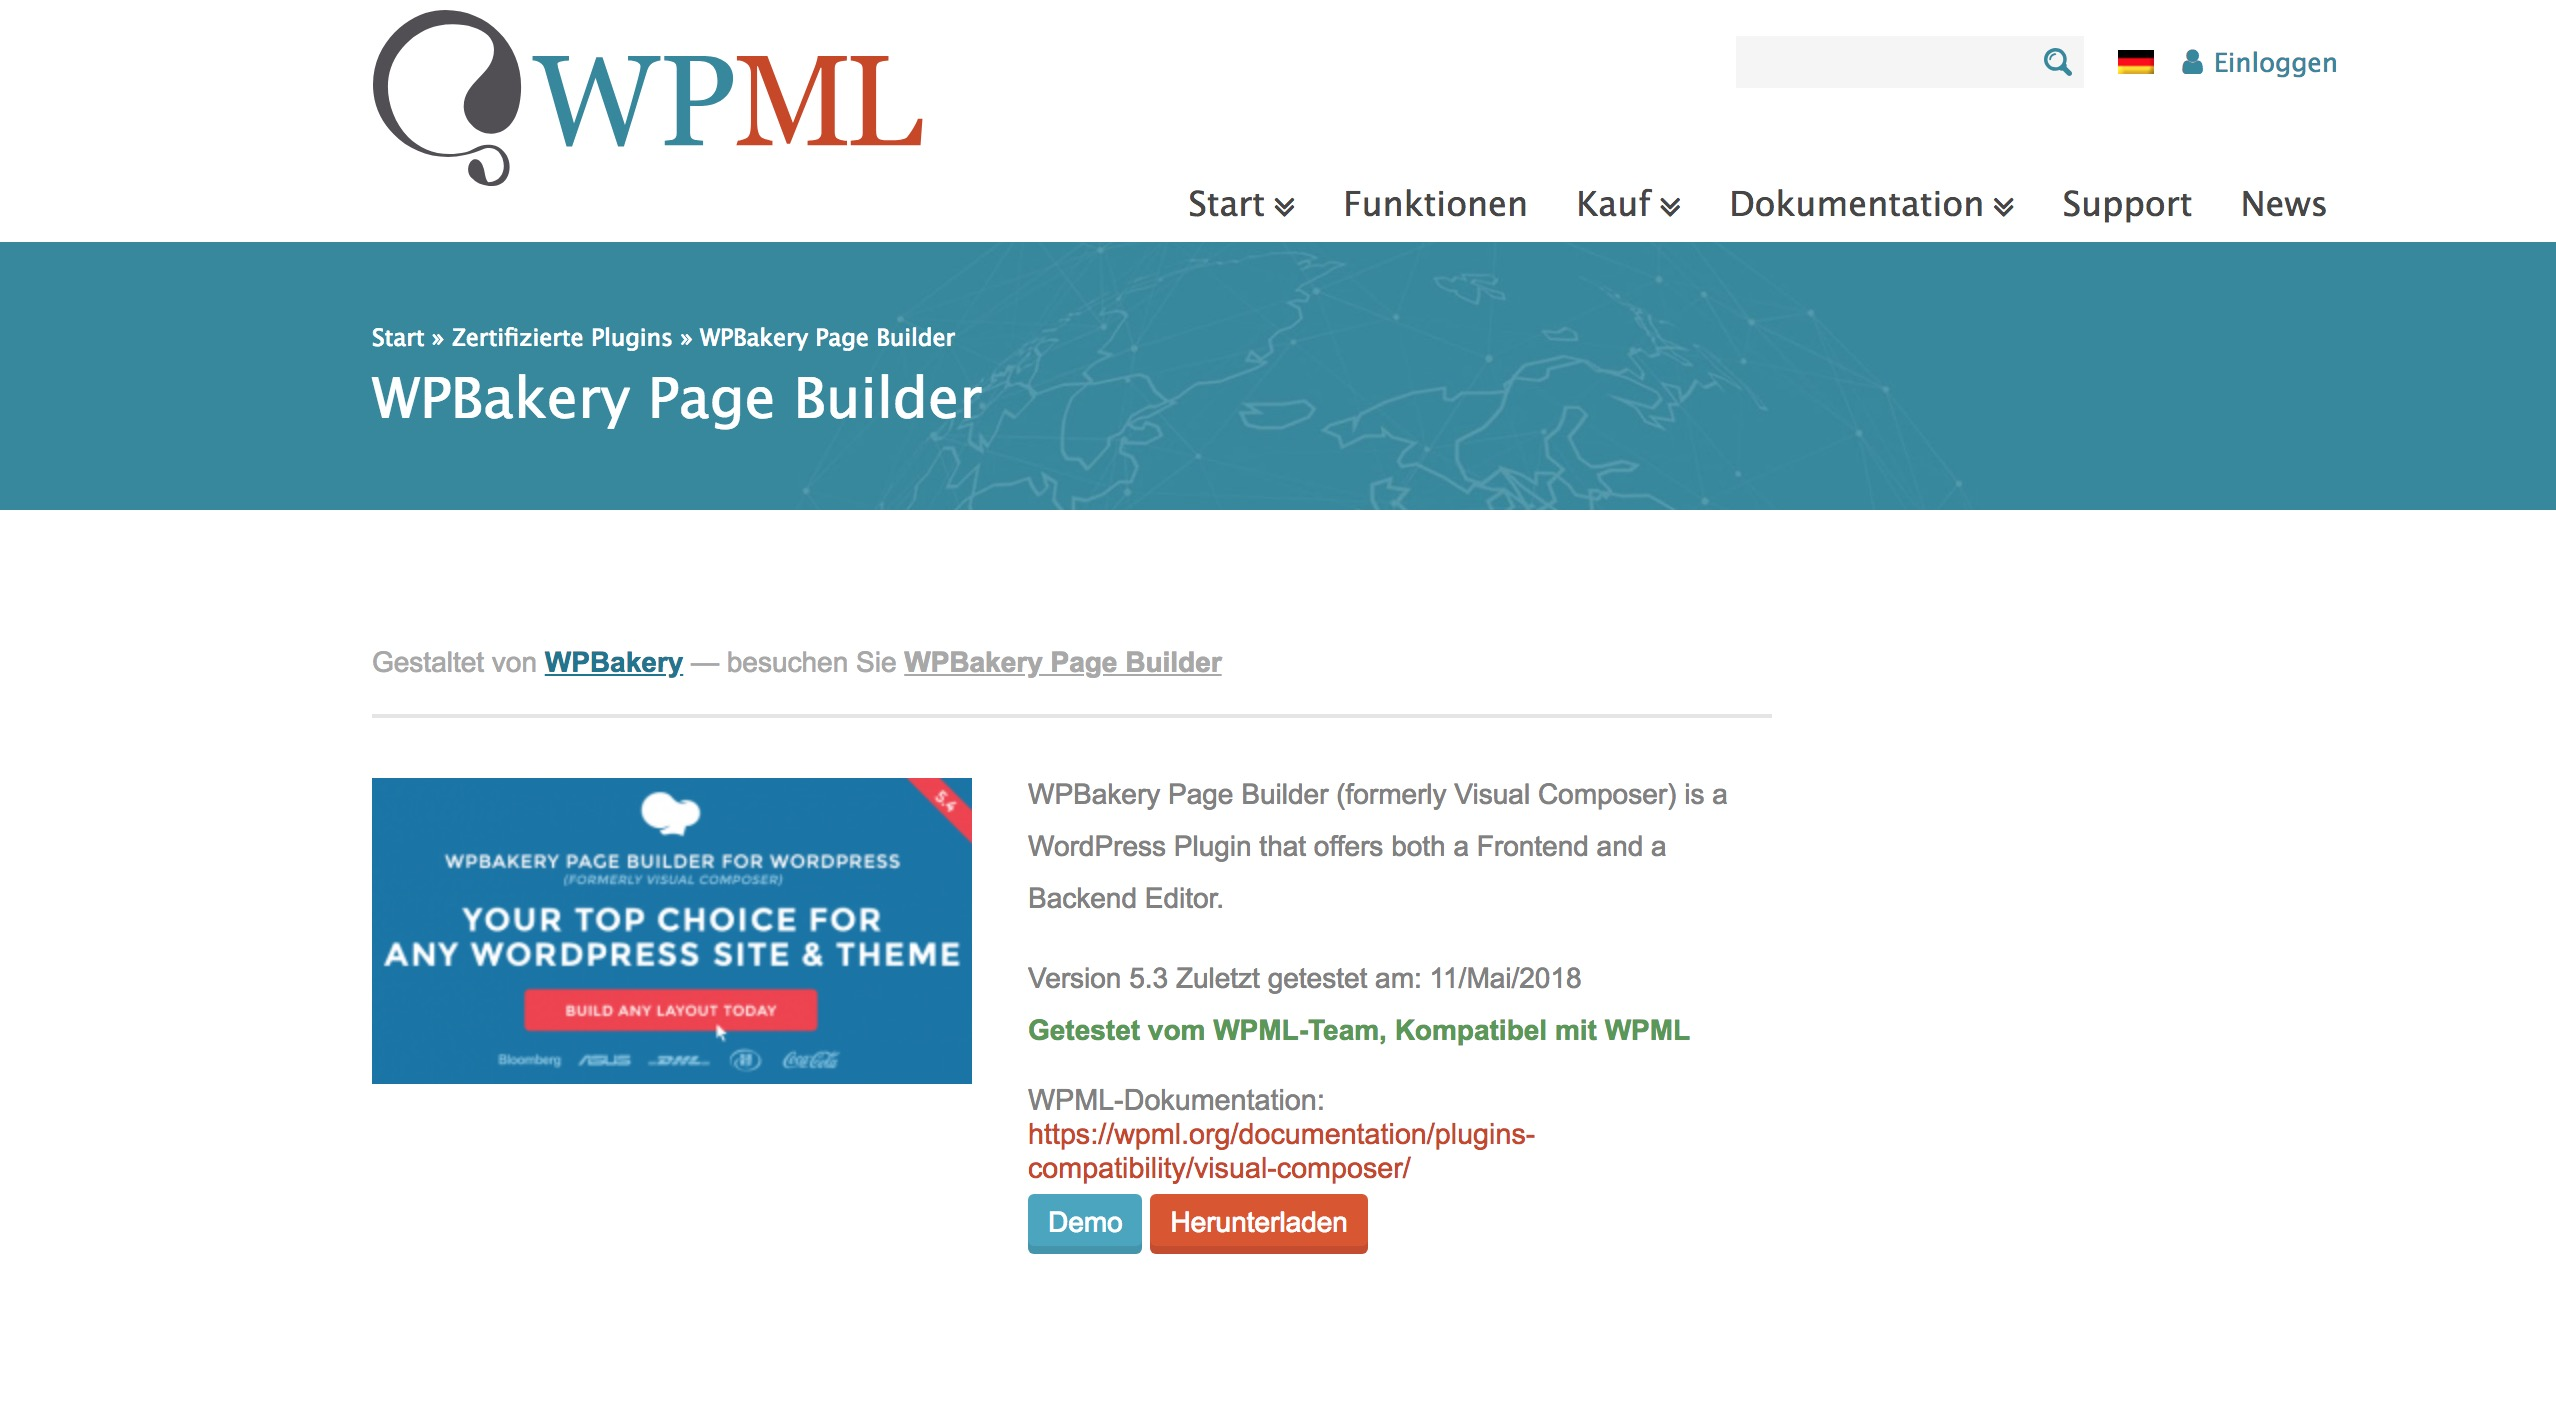 Problems with translation of WP-Bakery Page Builder - WPML